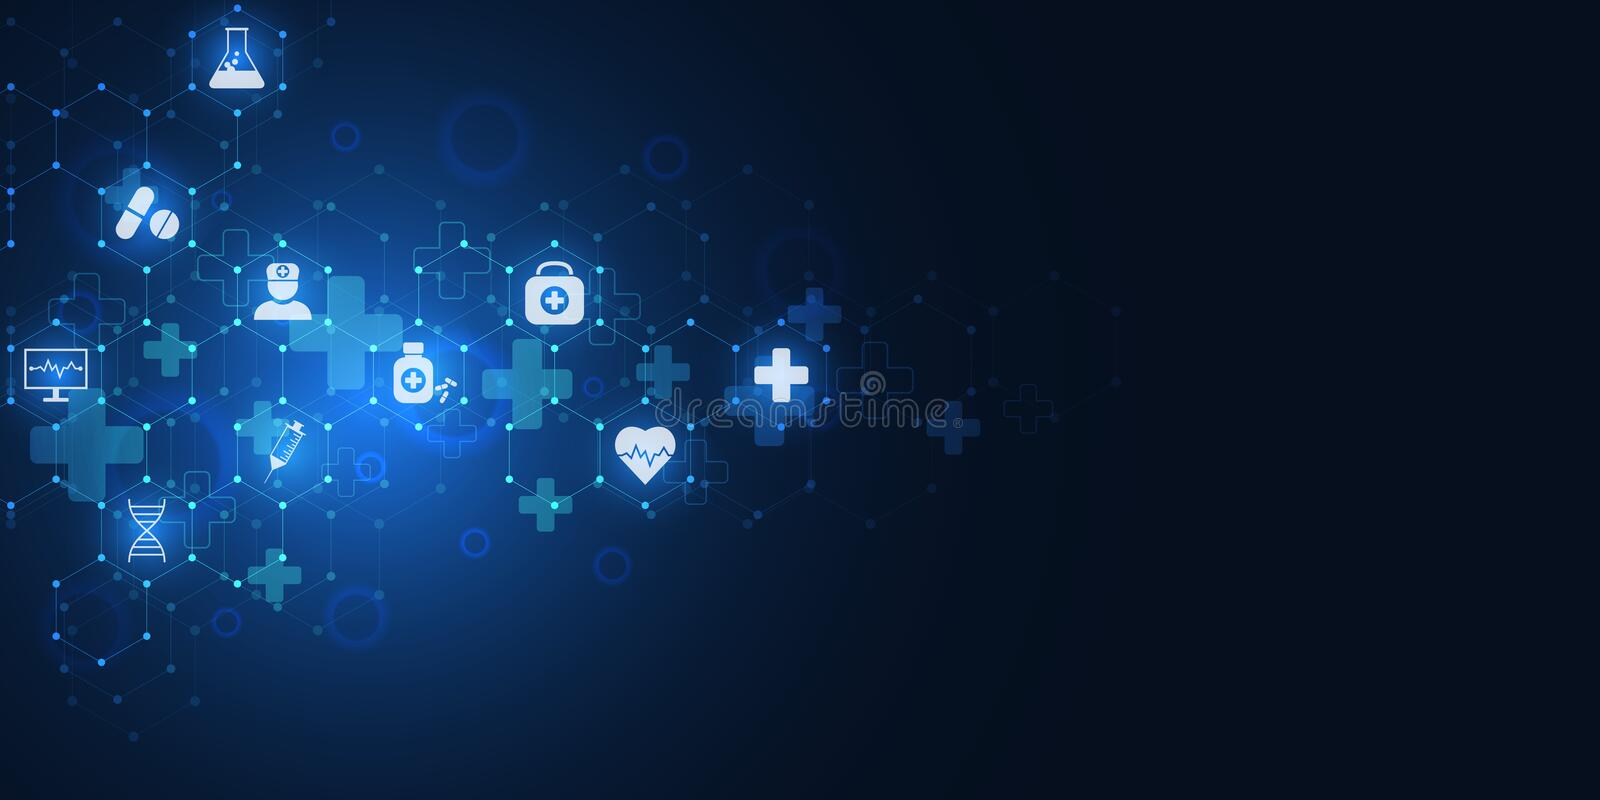 Abstract medical background with flat icons and symbols. Concepts and ideas for healthcare technology, innovation. Medicine, health, science and research royalty free illustration